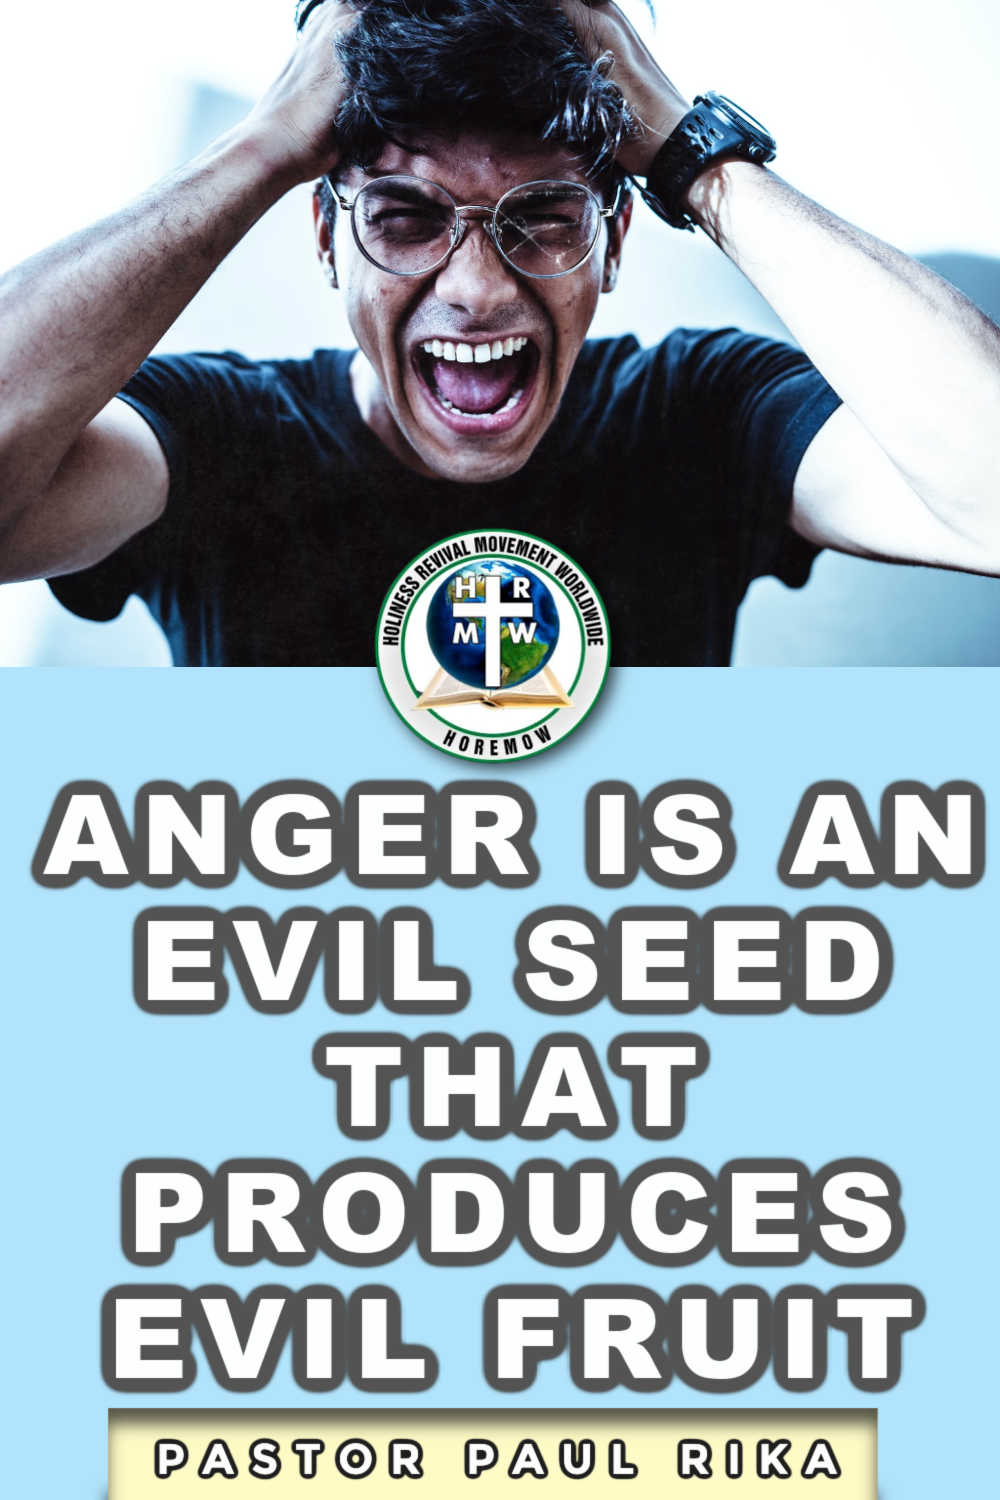 Anger is an evil seed that produces evil fruits